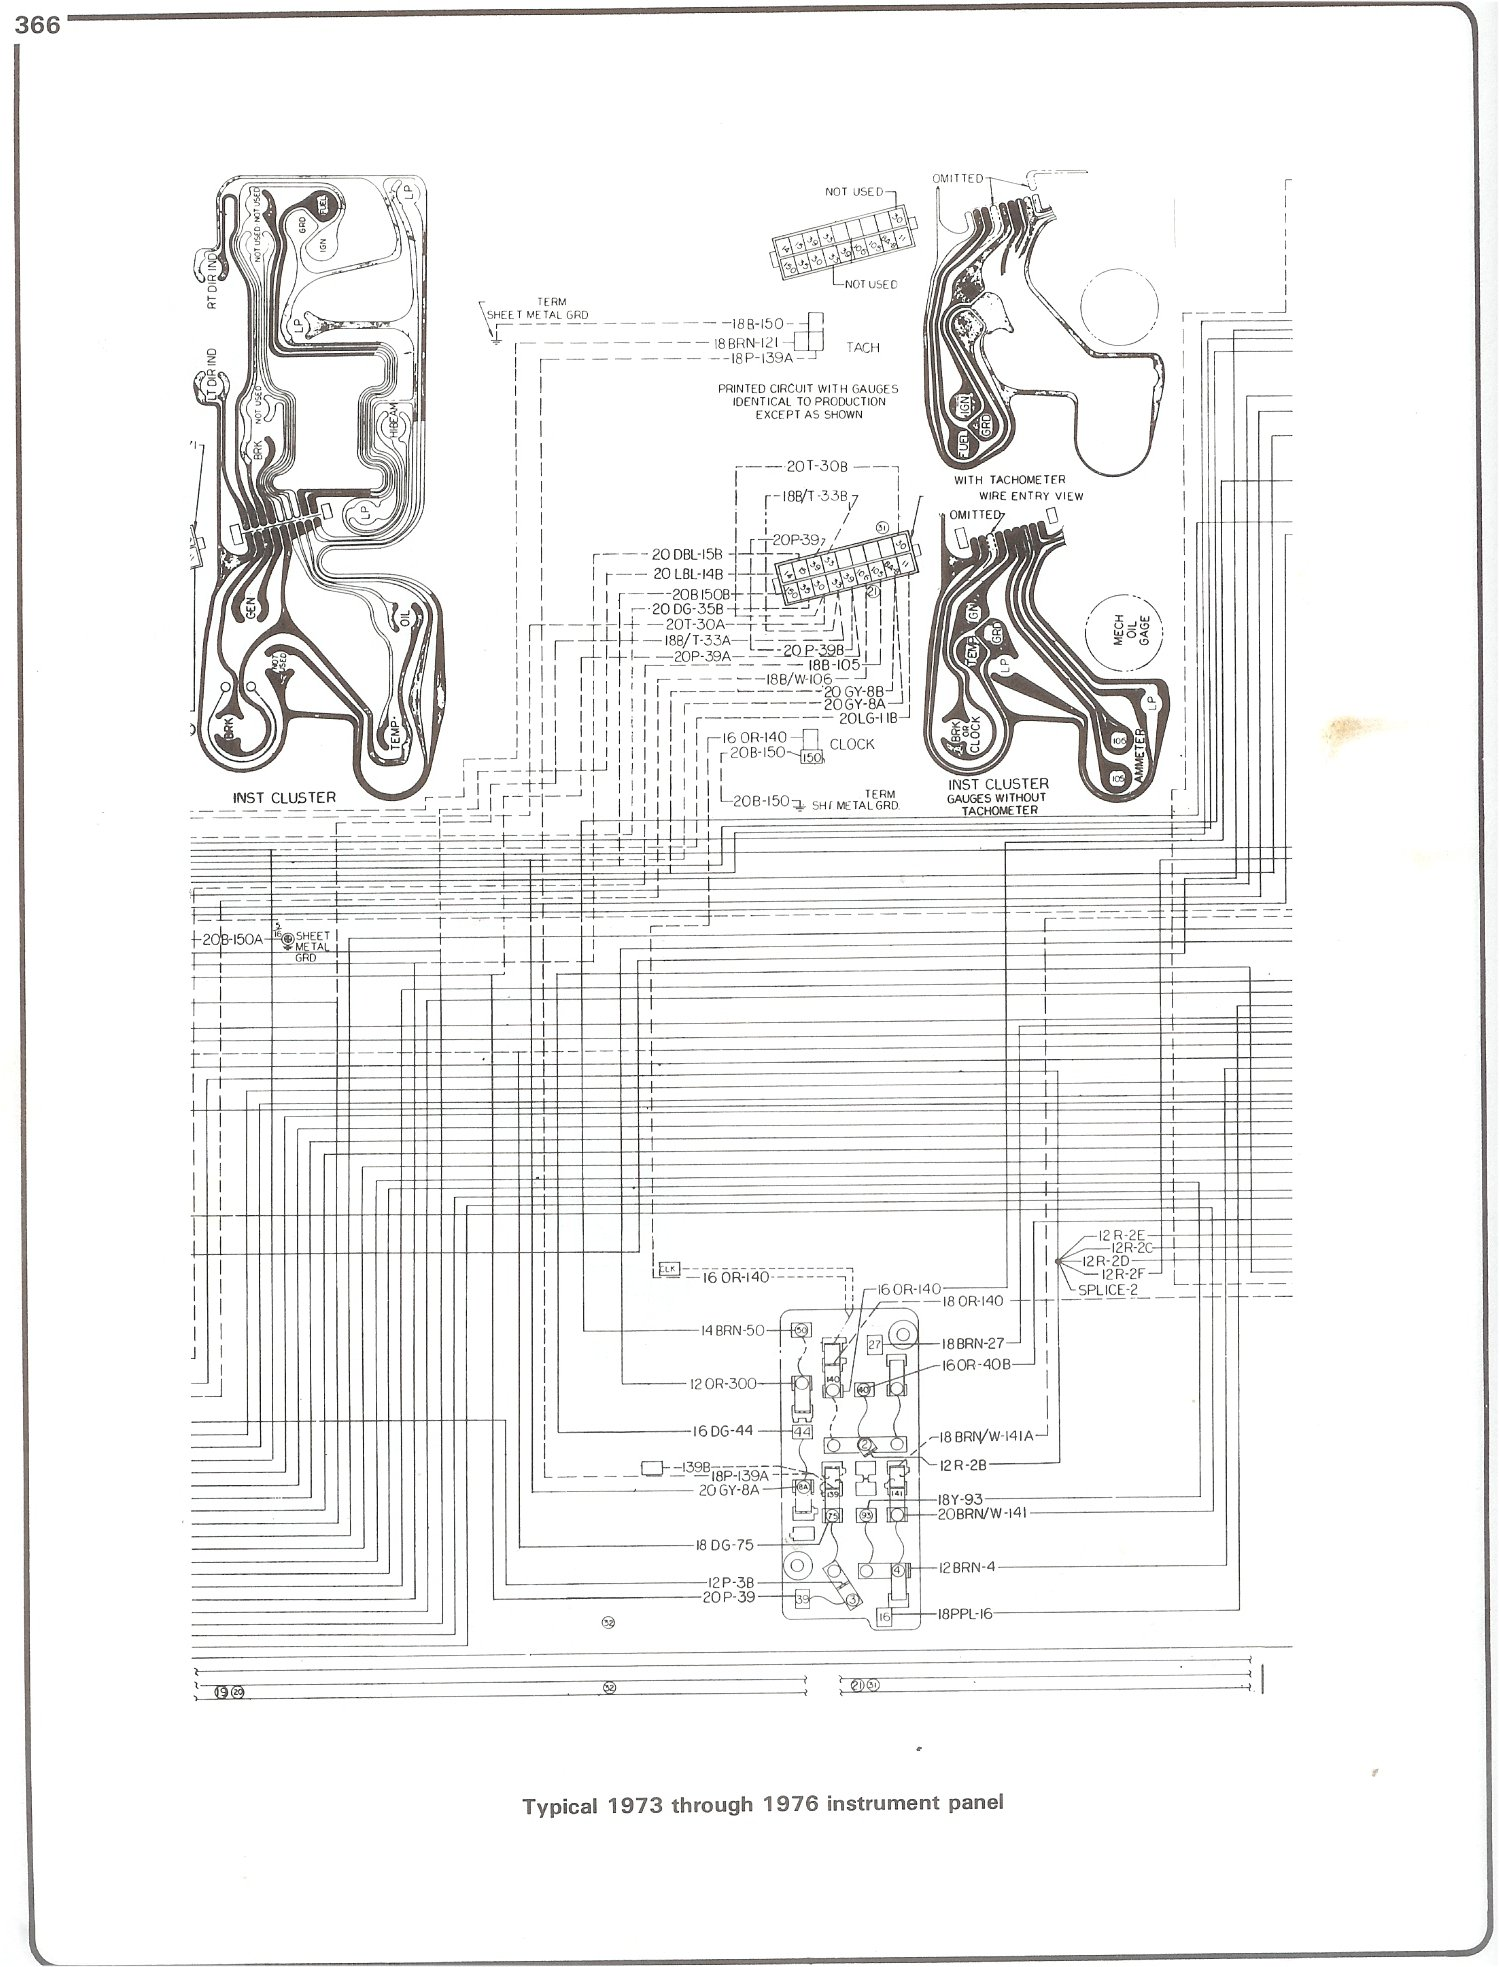 73 76_instrument complete 73 87 wiring diagrams 1986 chevy c10 fuse box diagram at n-0.co